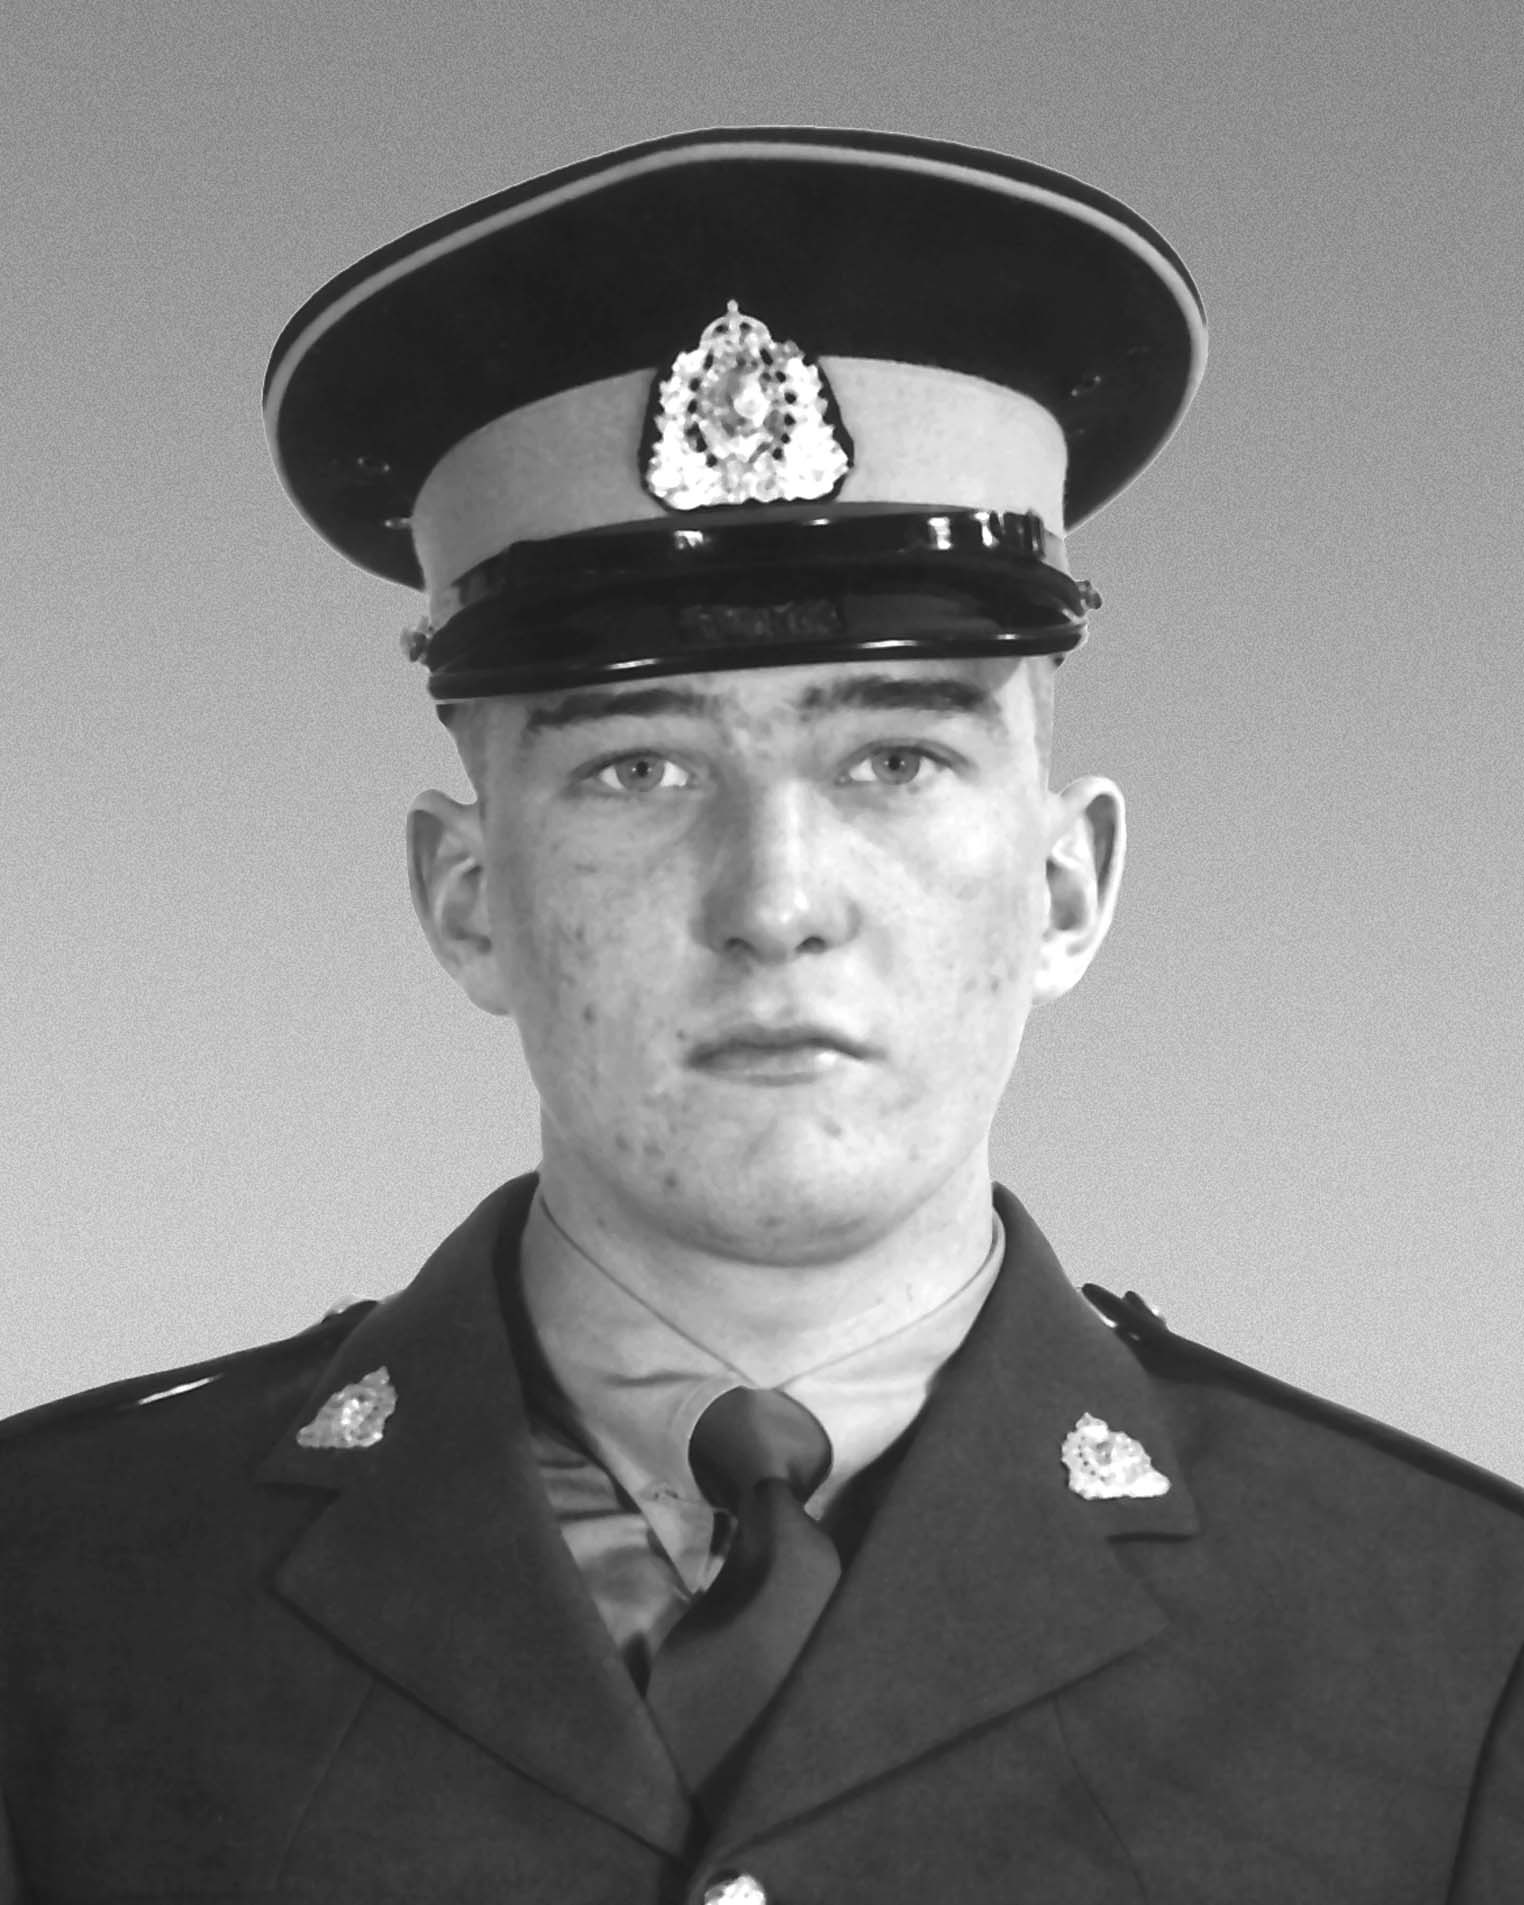 Constable John Roland Cobley– © Her Majesty the Queen in Right of Canada as represented by the Royal Canadian Mounted Police